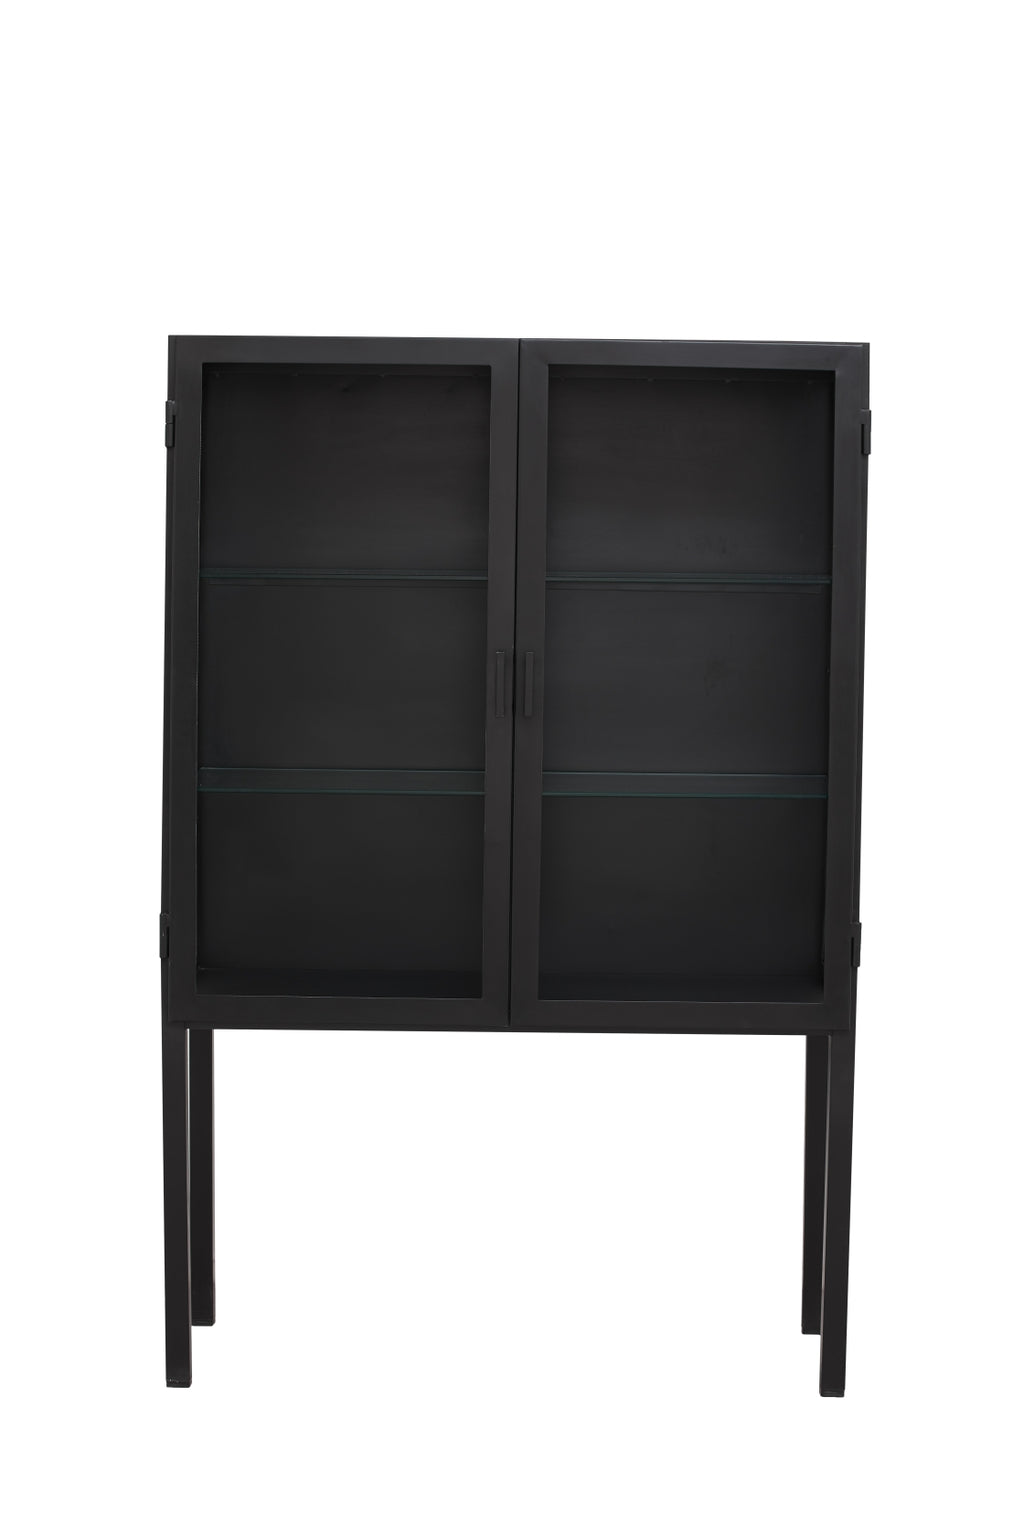 Grade Display Cabinet - SAK Home